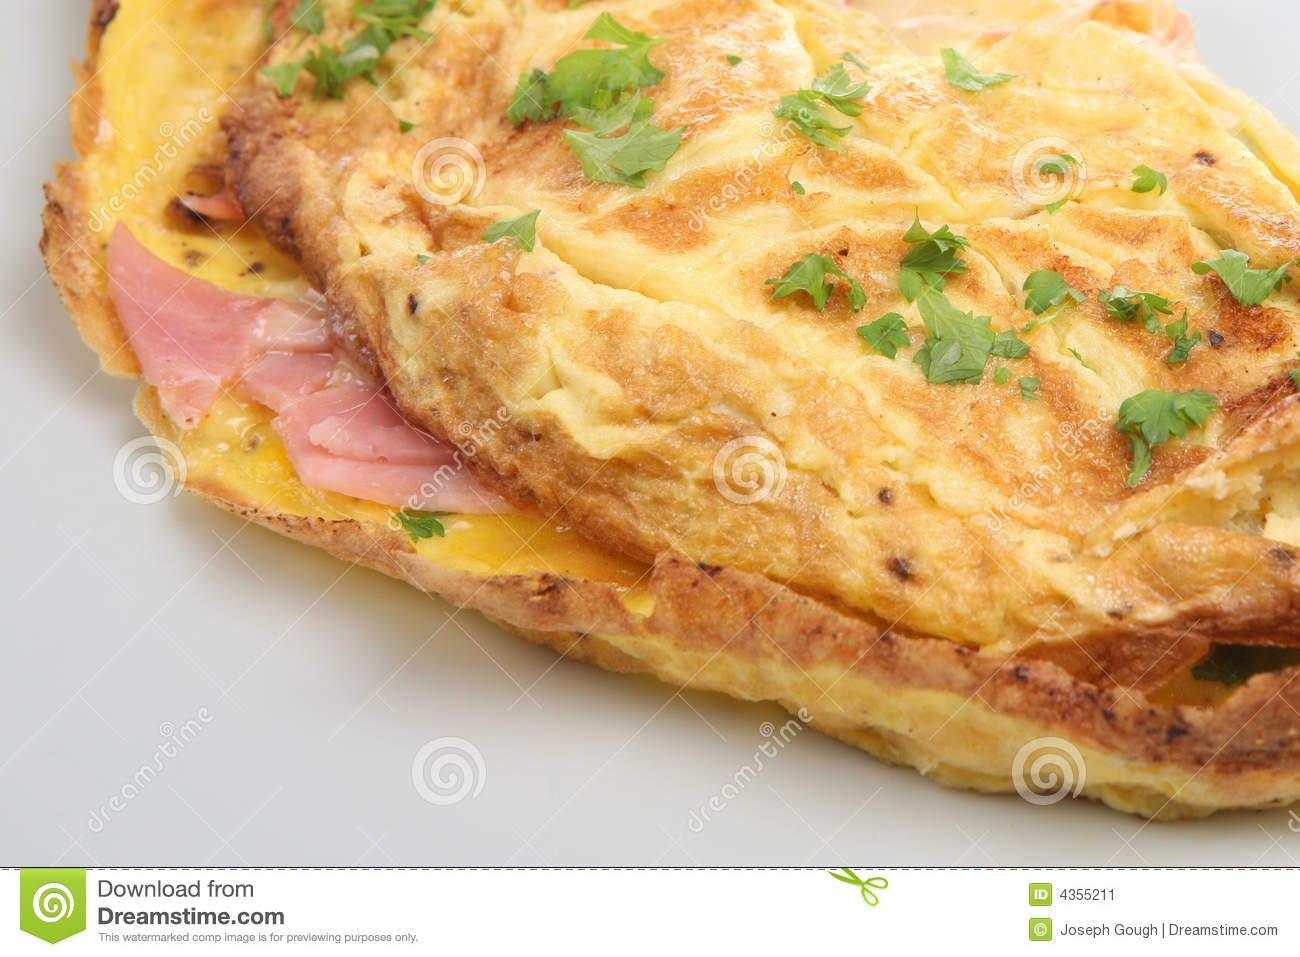 Ham & Cheese Omelet Stock Image - Image: 4355211